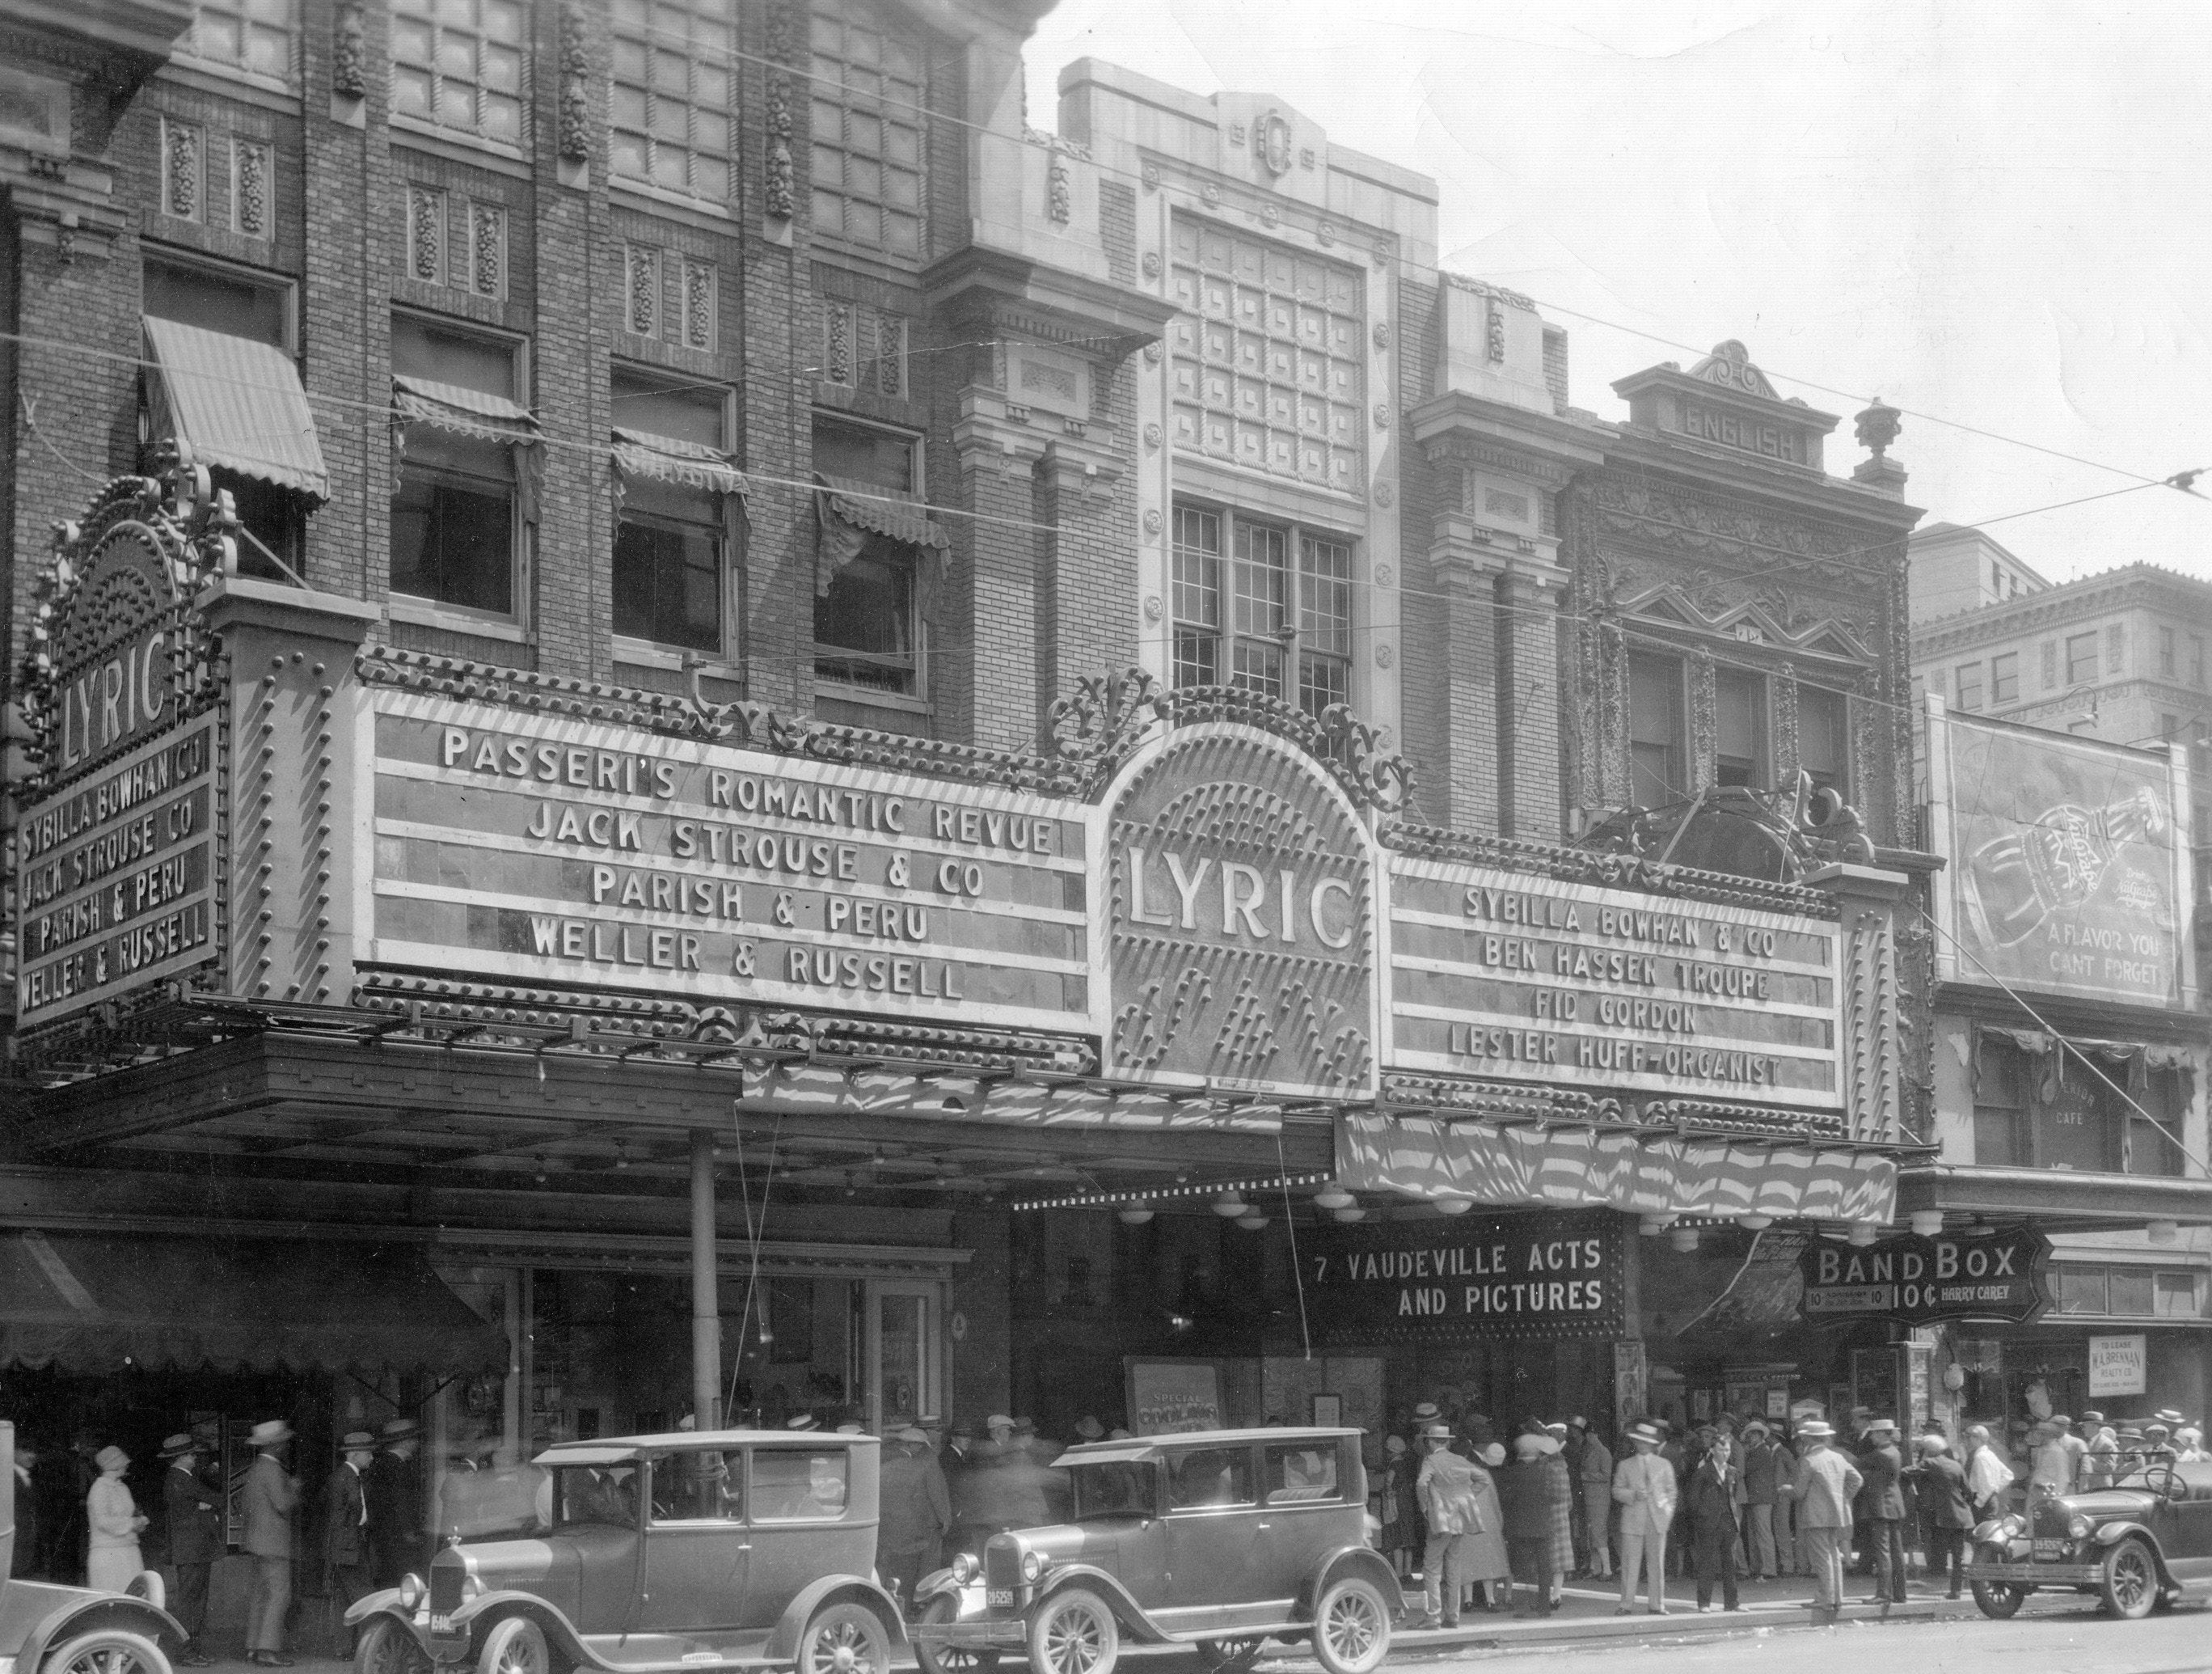 The Lyric Theatre at 135 N. Illinois St. in 1927.